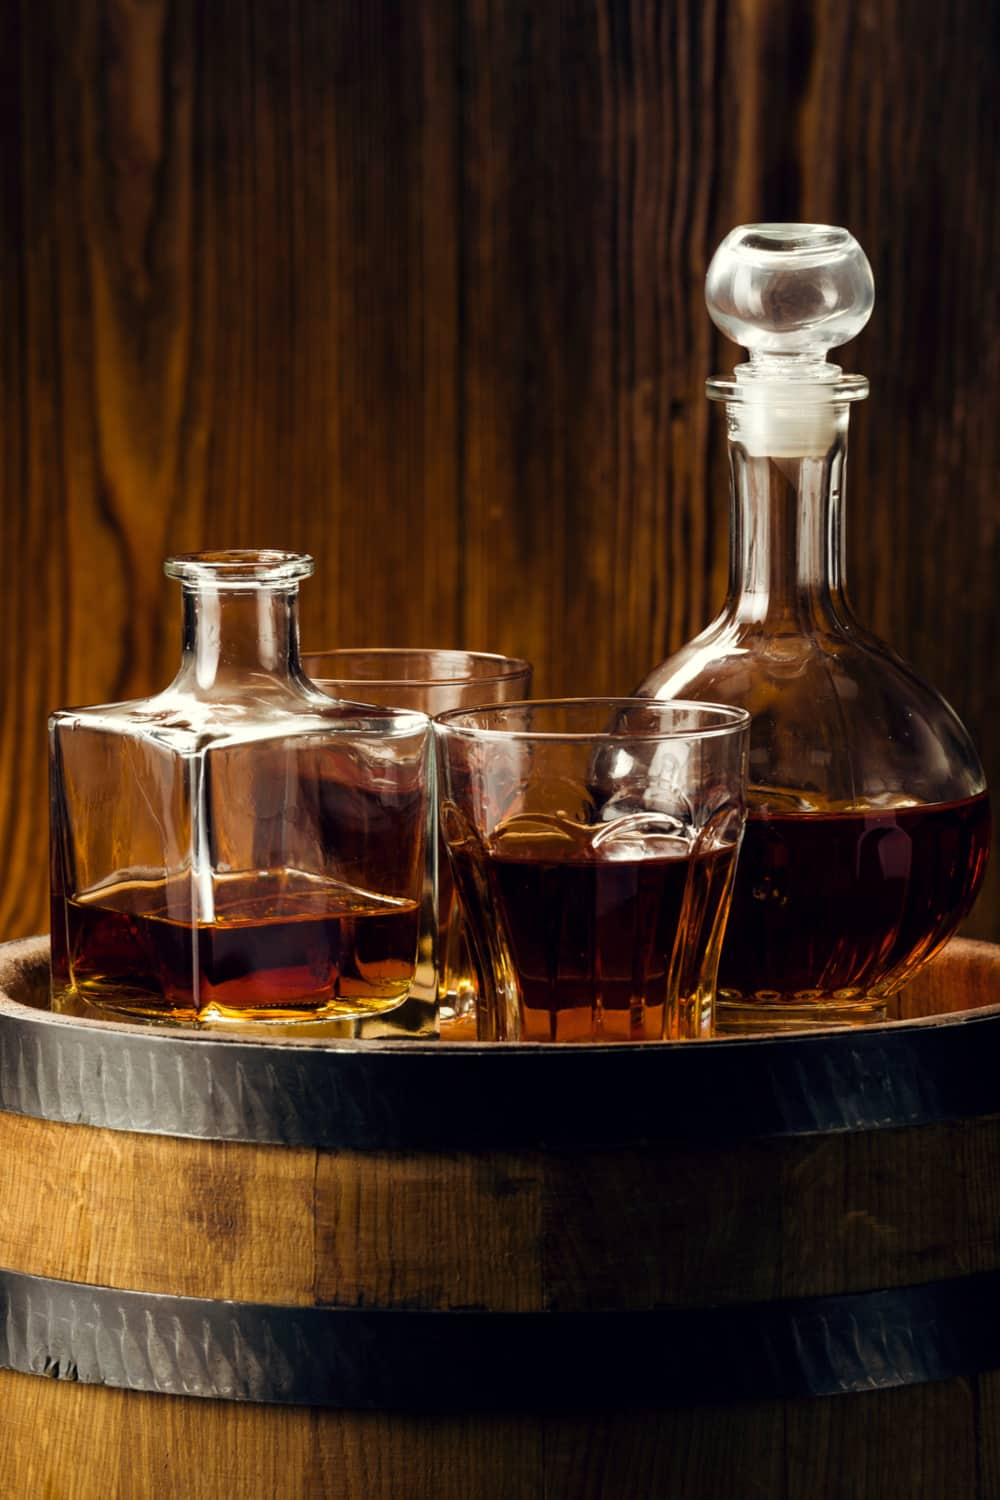 5 Tips to Store Brandy